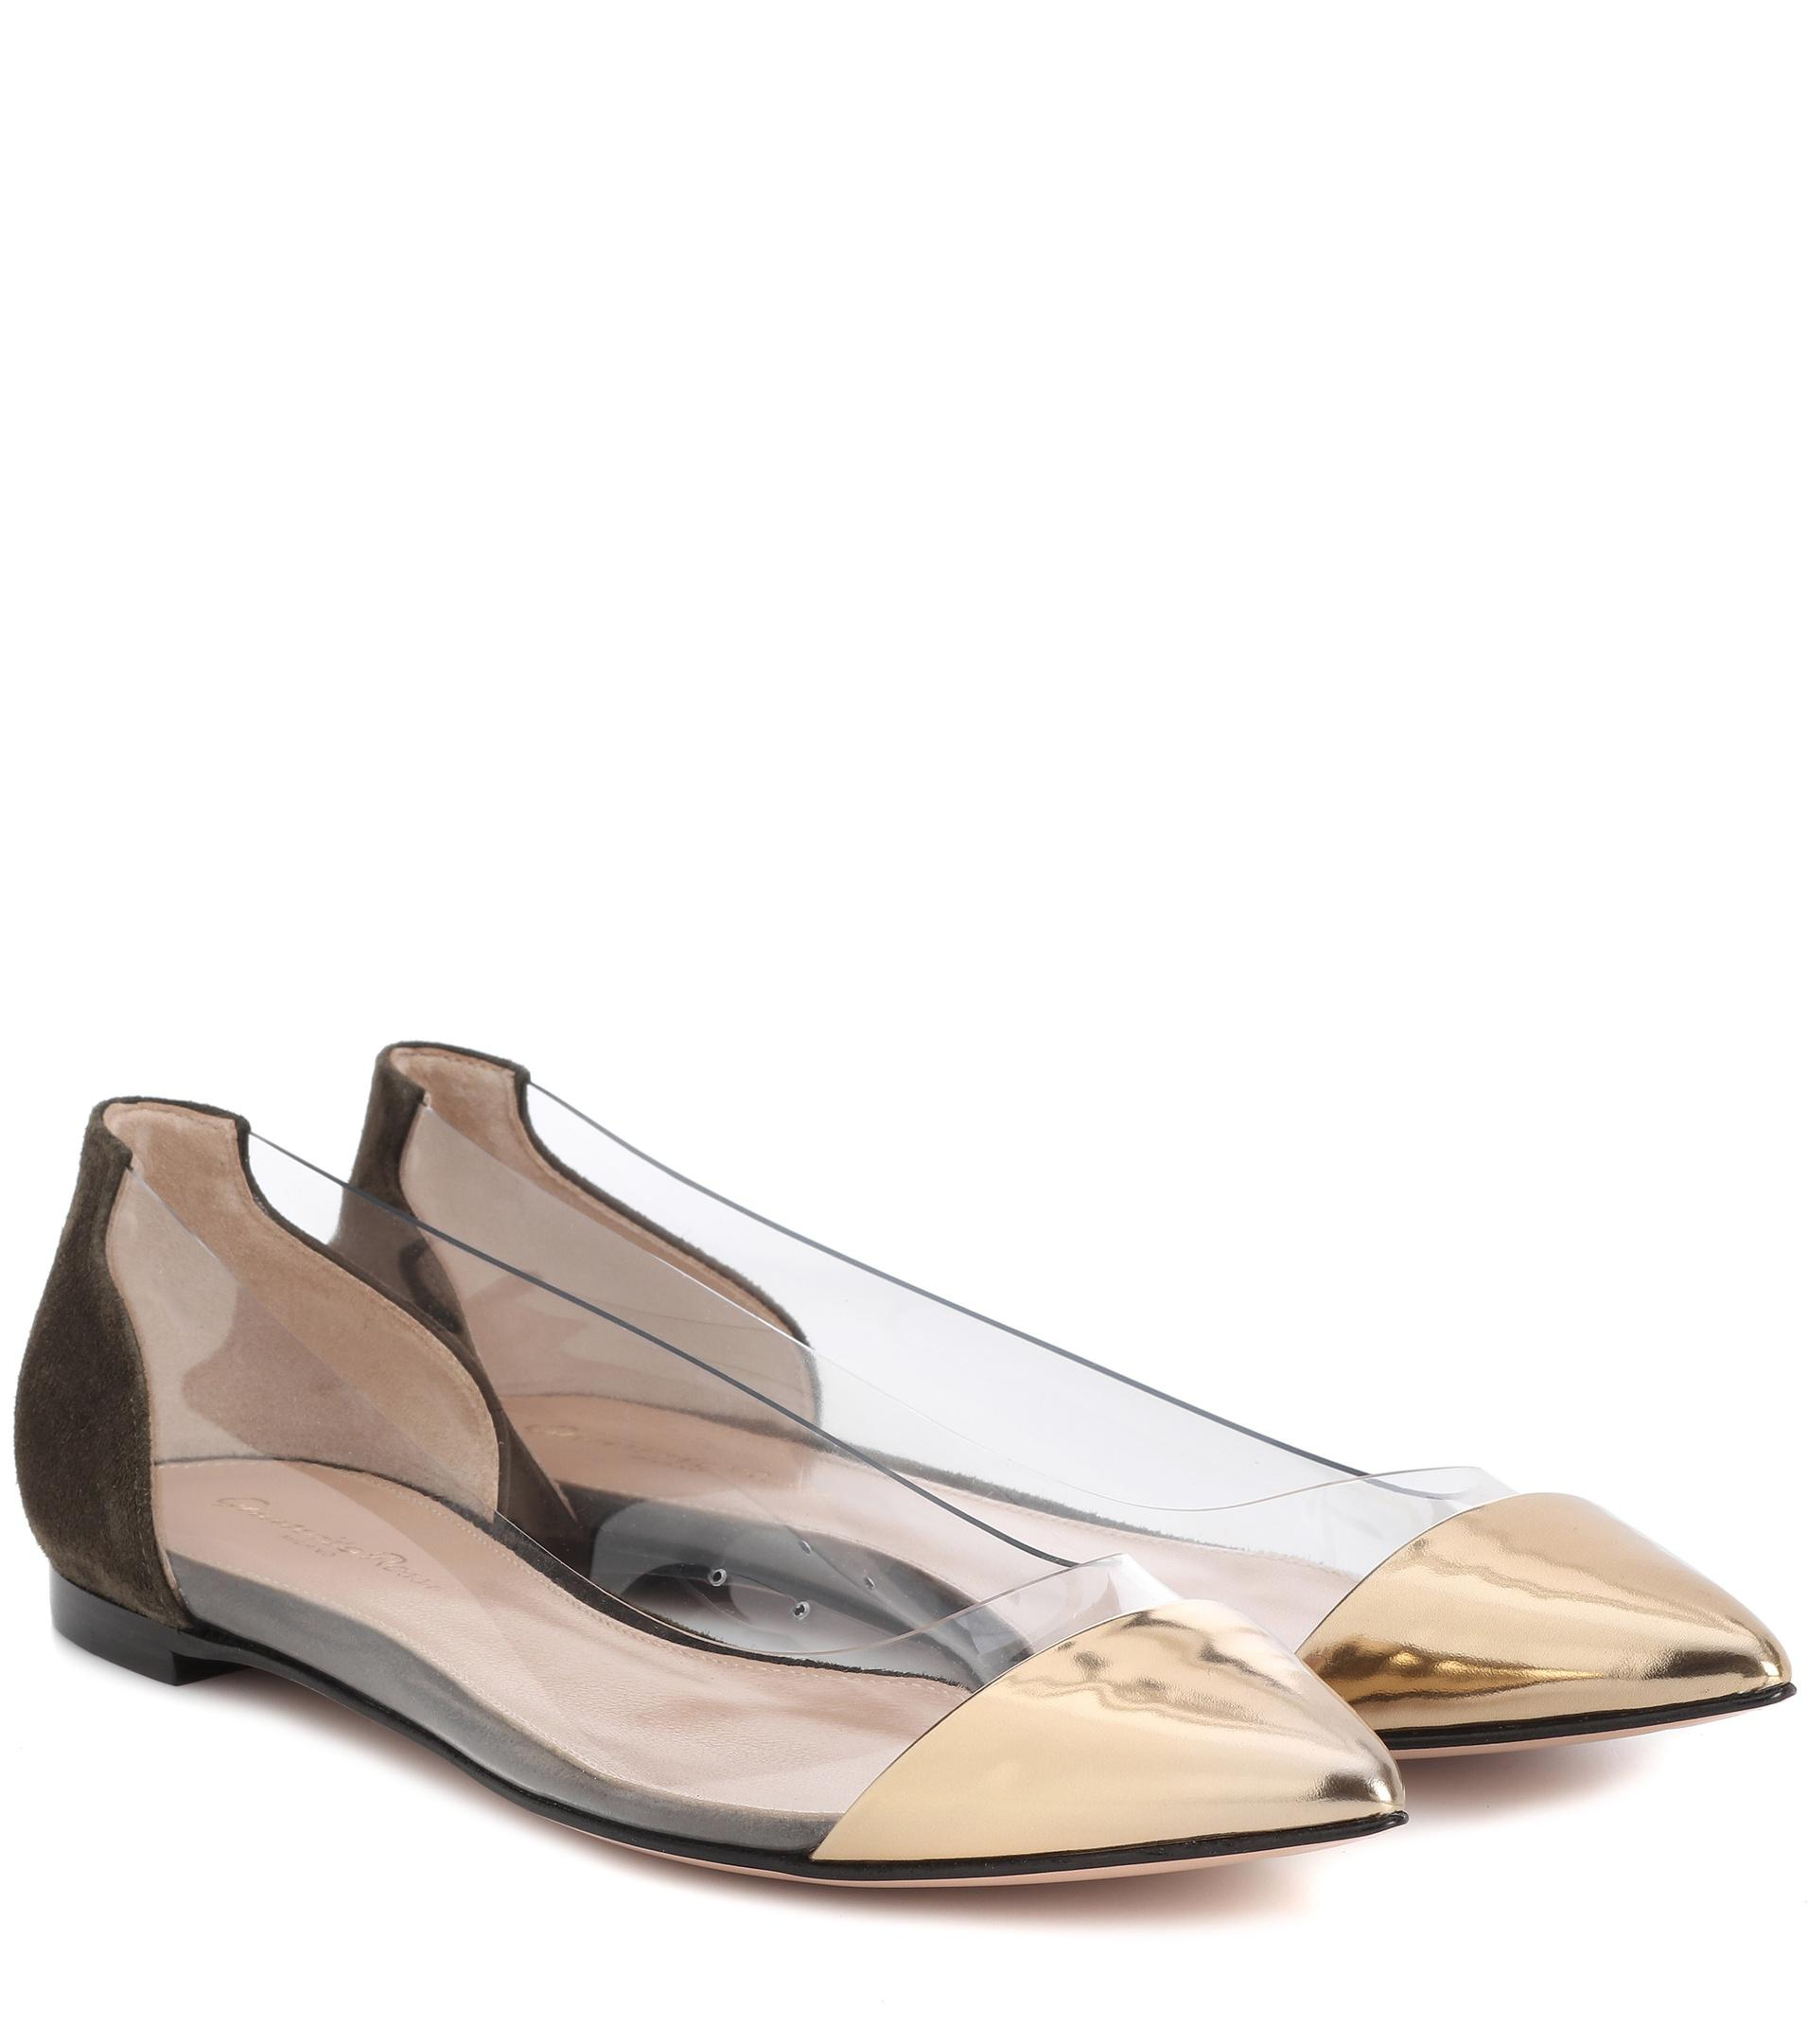 Gianvito Rossi Exclusive to mytheresa.com – Plexi leather and suede ballerinas pre order for sale outlet discount latest collections QvVbL